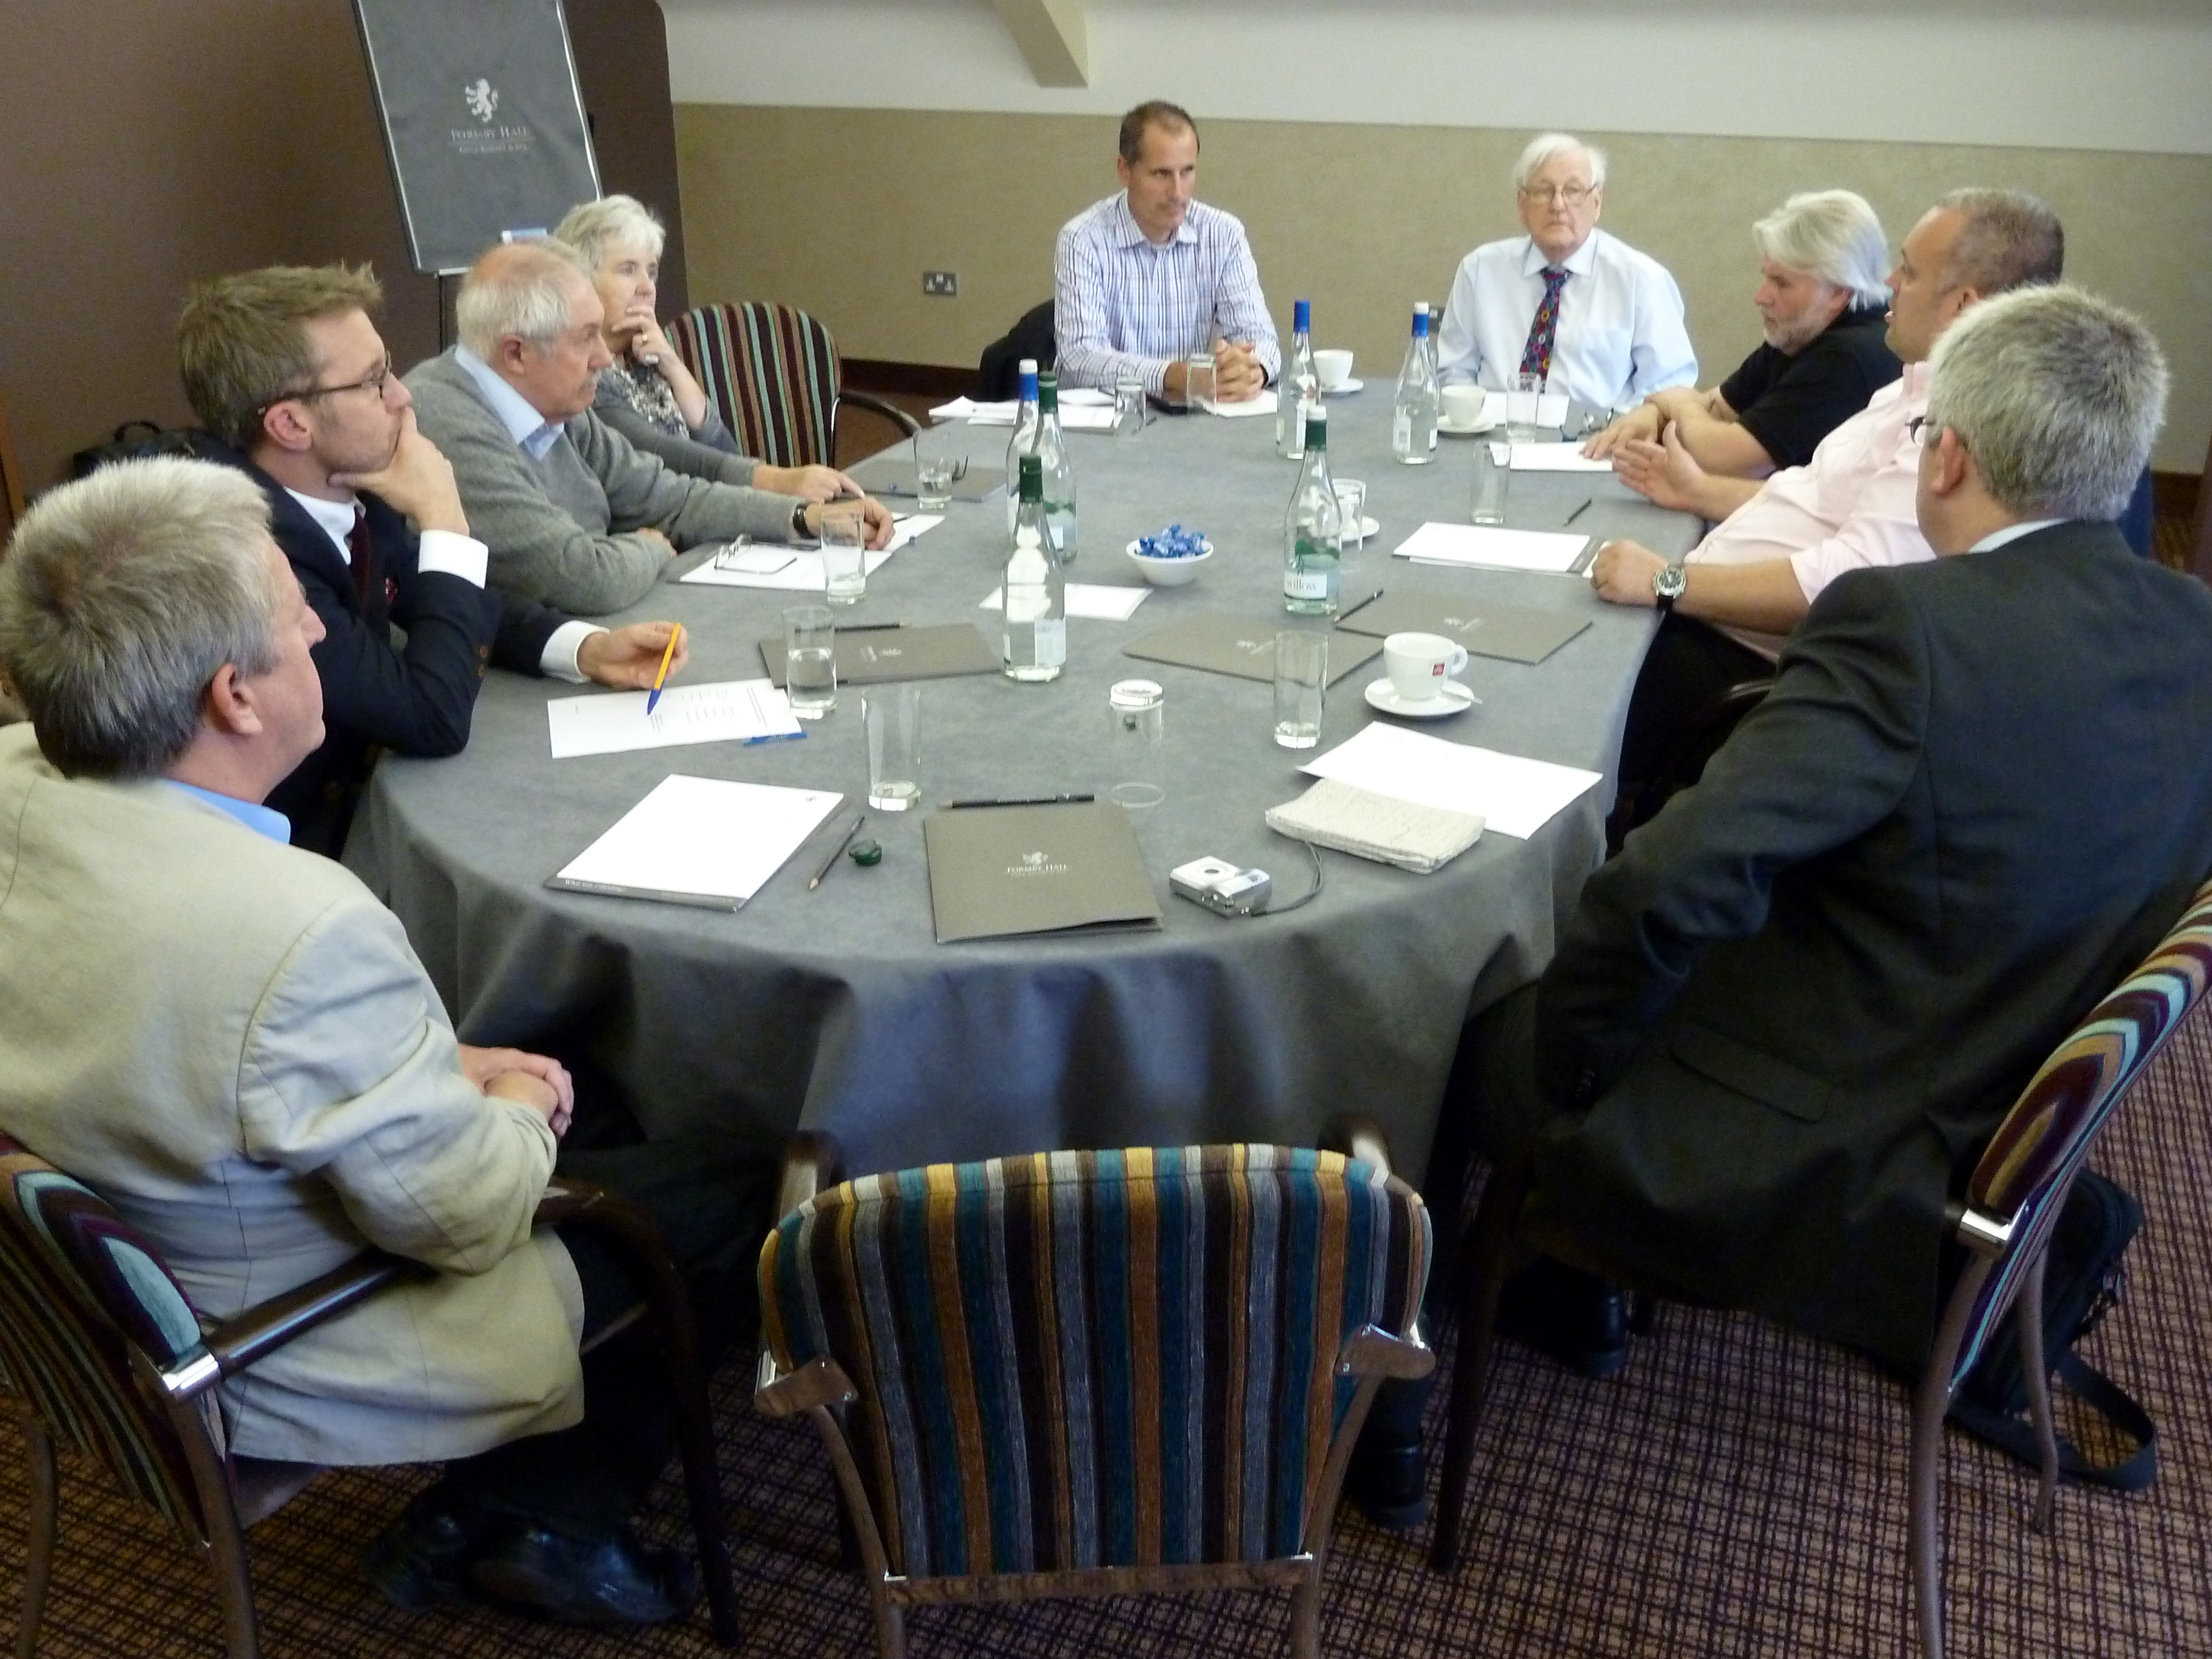 Sefton Central Labour MP Bill Esterson and Len Collinson, with Tim Fisher from Coffee Culture UK, Ian Gordon from iKO Ventures, Thomas Kirkby from Rialto Services, Kevin Long from The Kitchen Sink, Catherine and Stuart Sime from Catherine Loreto Sime and FCB development manager for Mersyeisde, West Cheshire and Wigan, Phil McCabe.